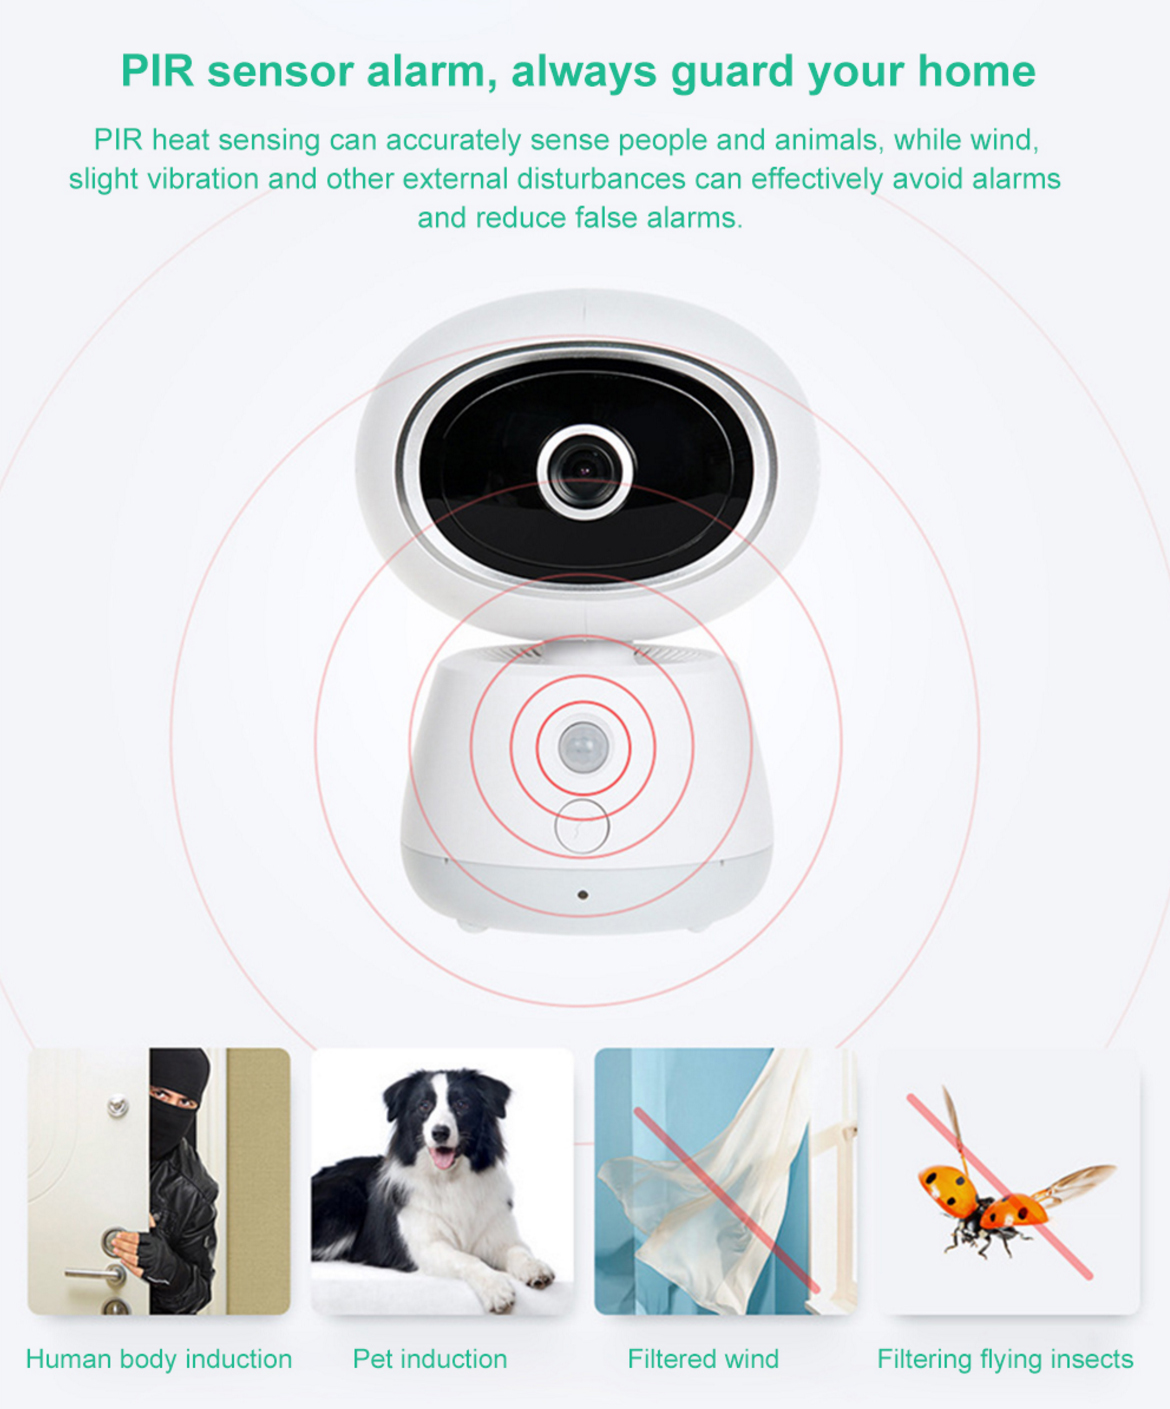 Bqcker BK-EQ1 360°PTZ Wireless IP Camera PIR Sensor Alarm M-otion Detection Baby Monitor Two Way Audio Monitor Night Vision CCTV WiFi Mornitor Cloud Baby Monitors